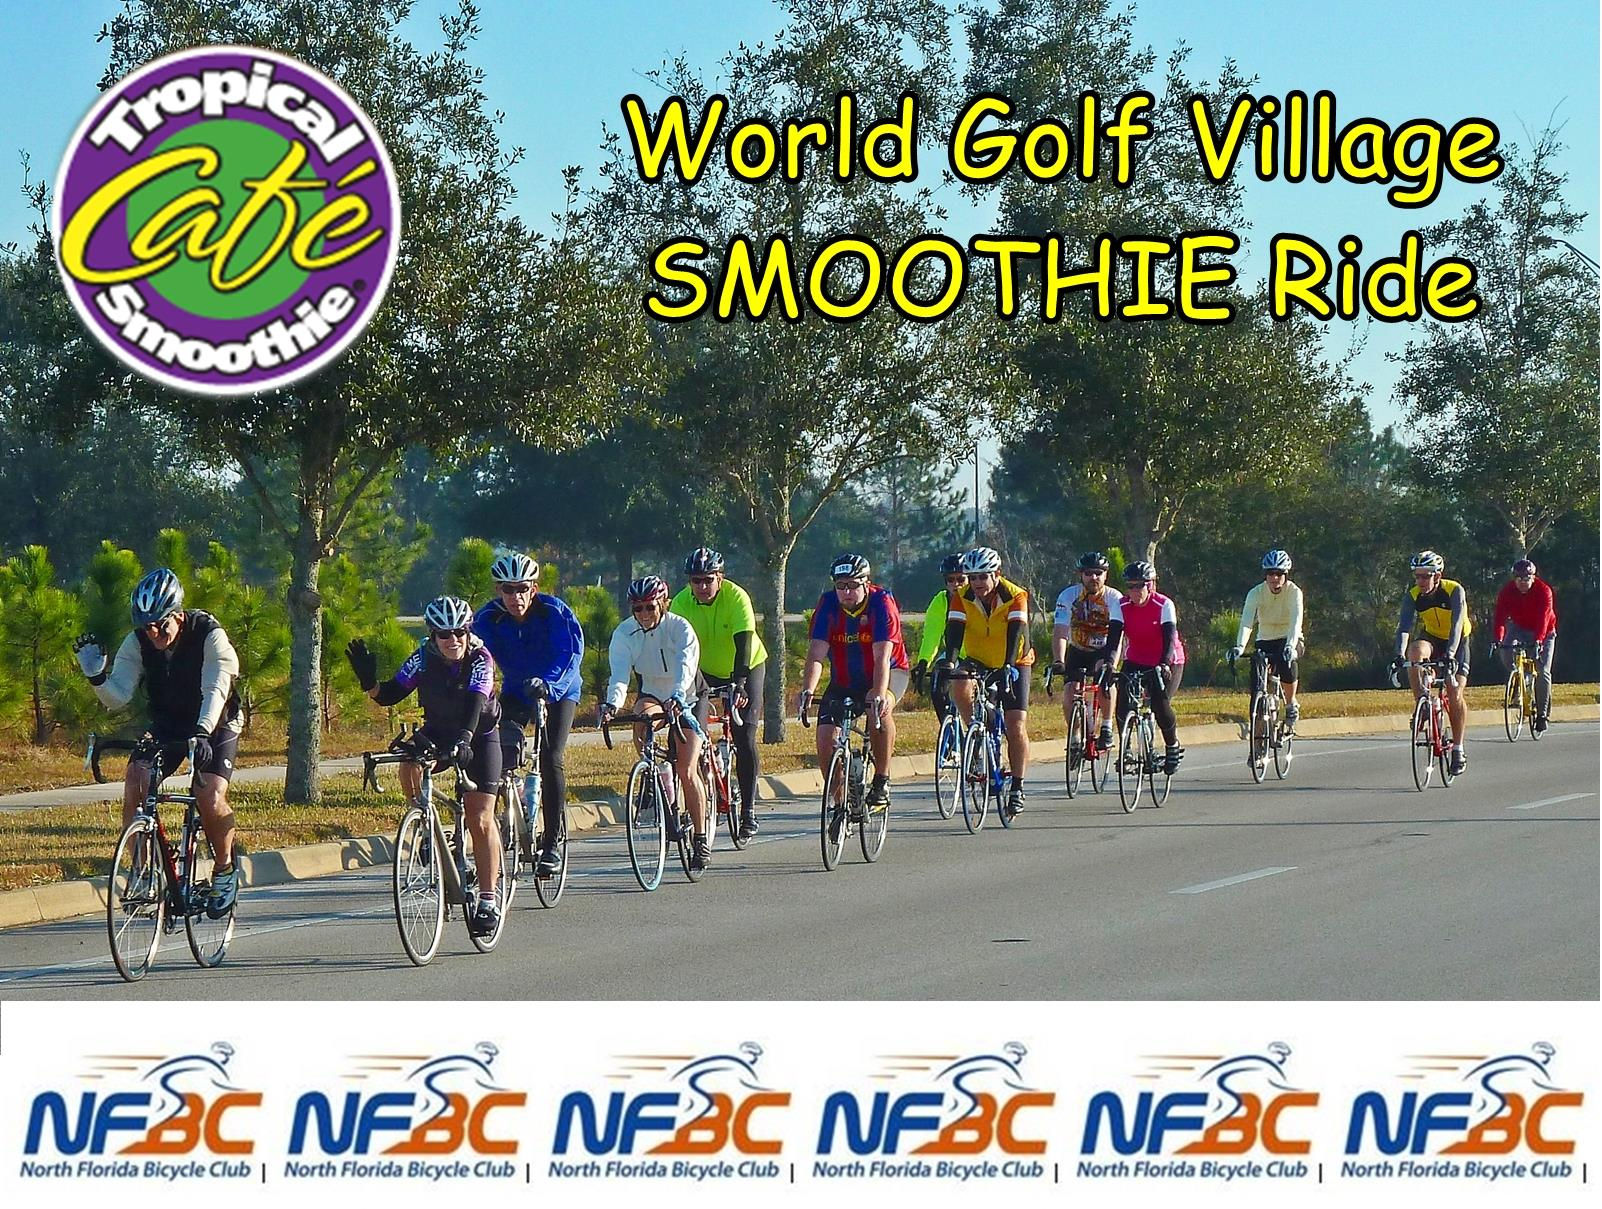 World Golf Village Ride announcement photo